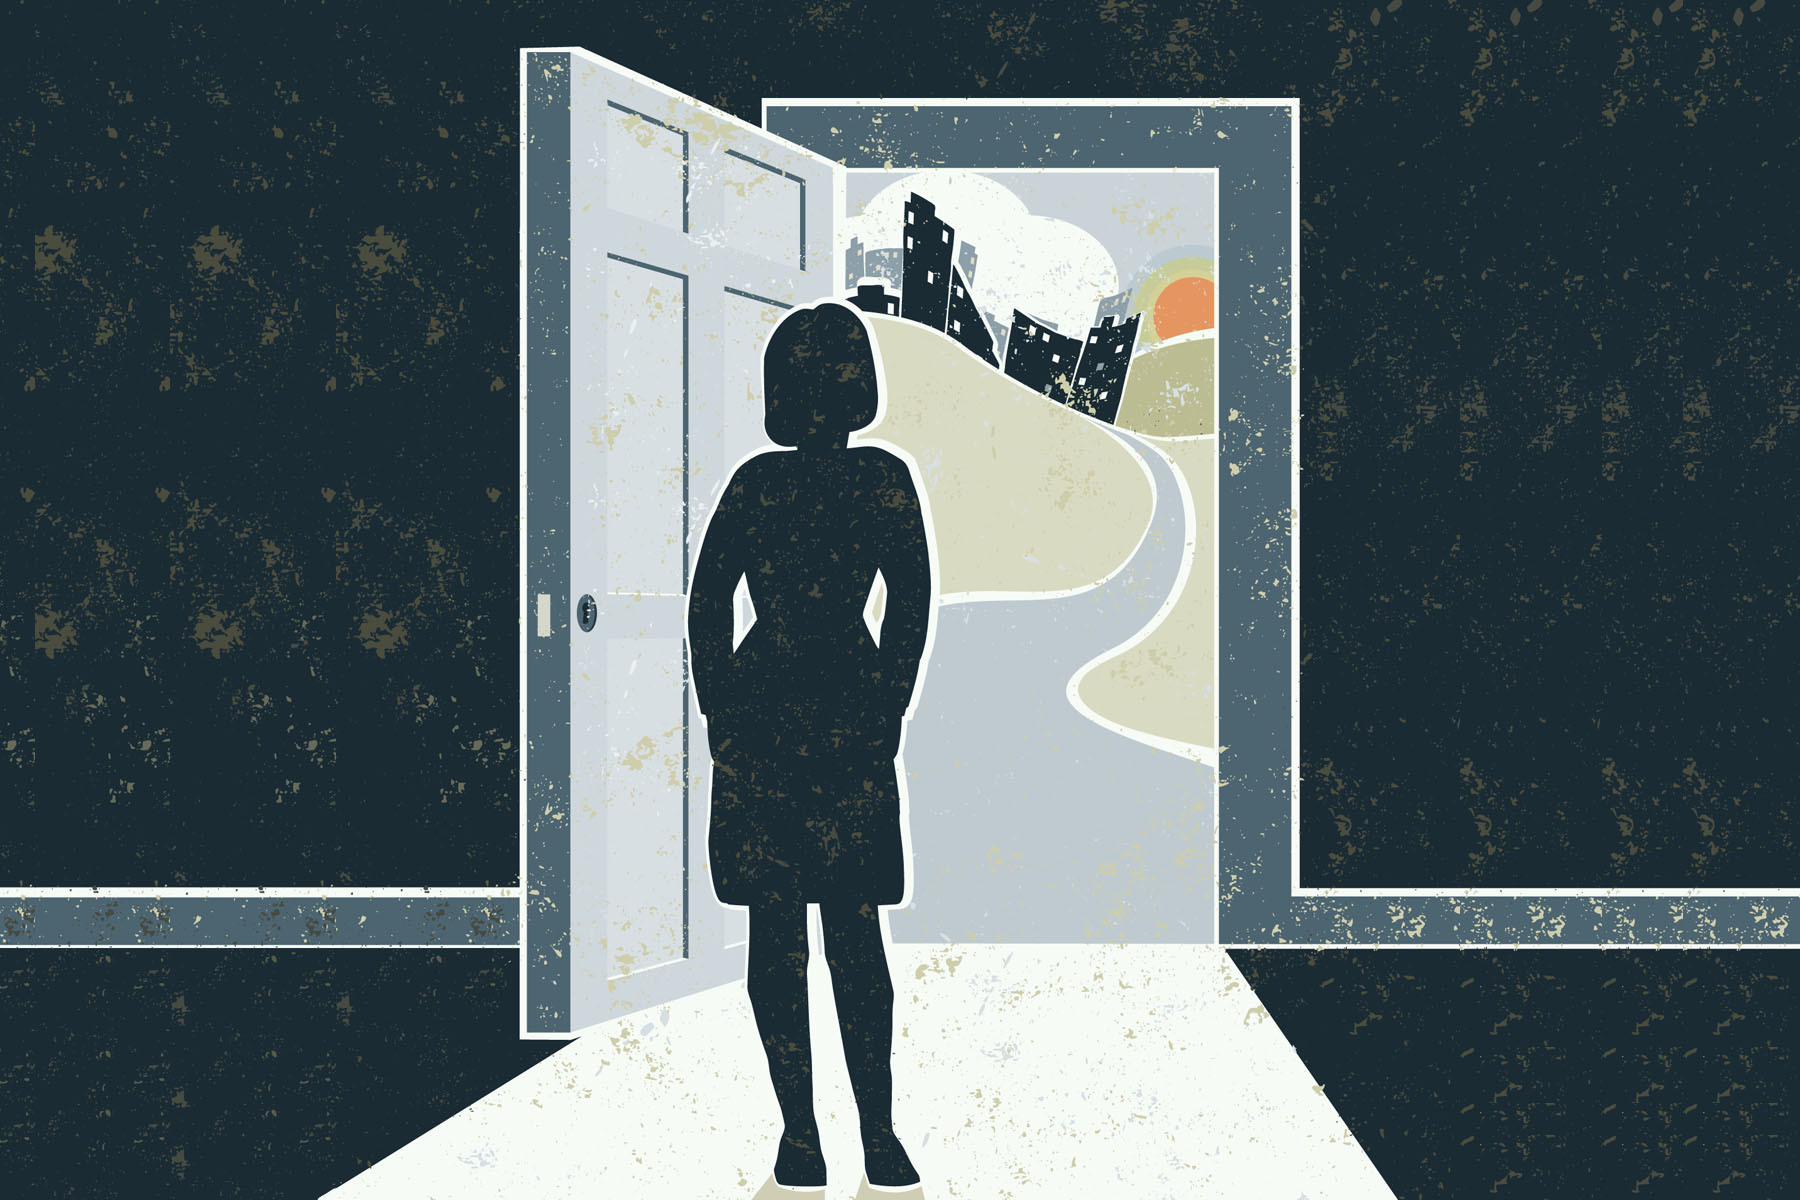 A woman stands at an open doorway with the world visible outside.